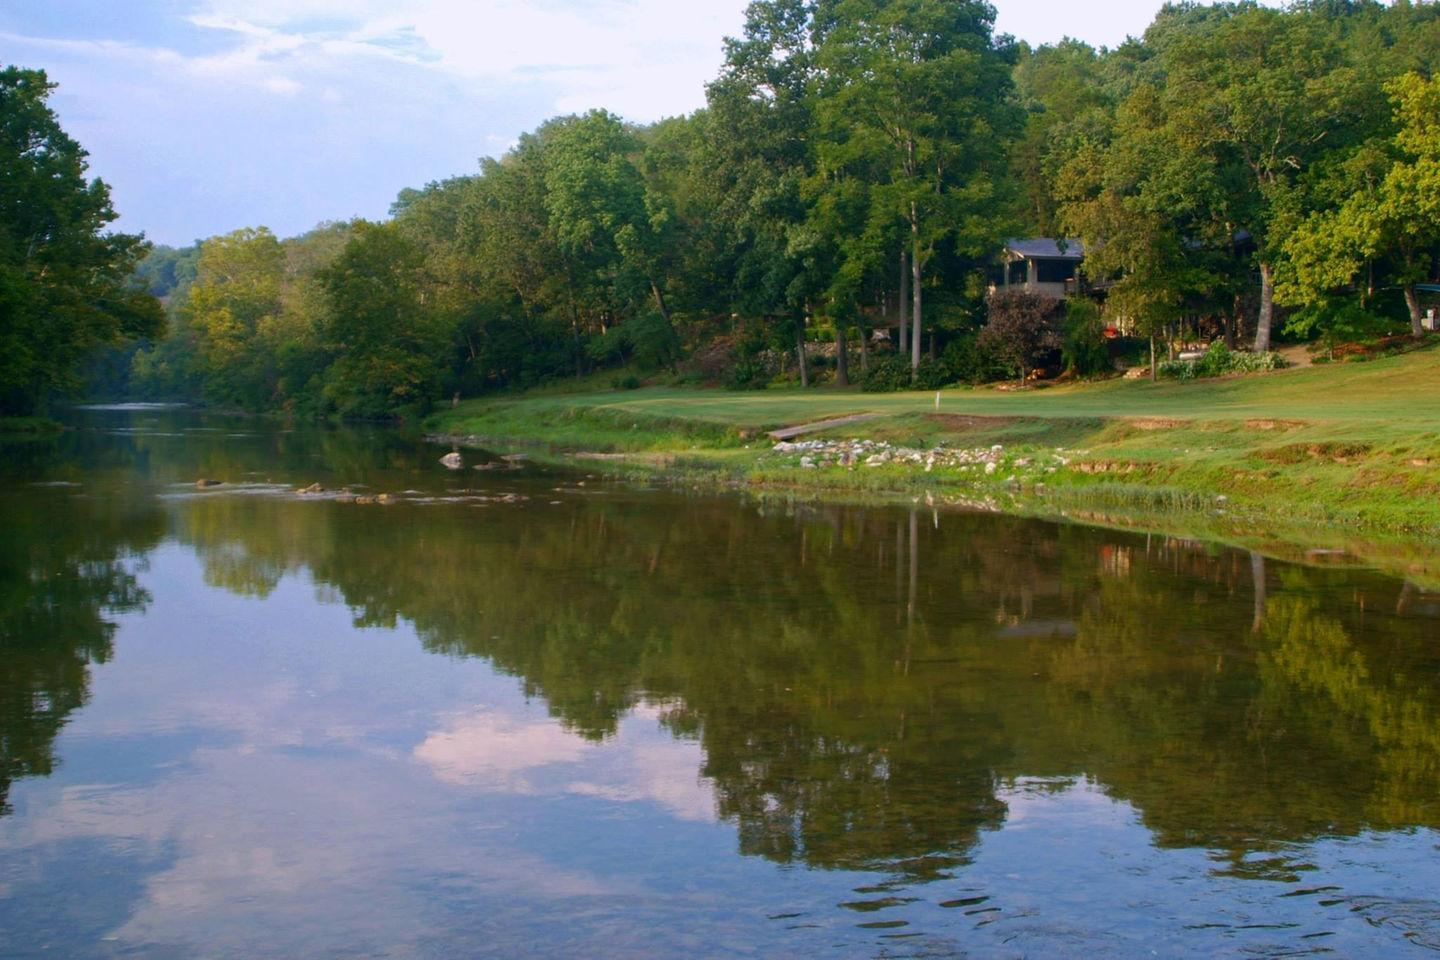 cherokee village chat sites Tellico village in tennessee is a is a luxury golf and lakeside community located a short drive from the cherokee foothills scenic live chat software fl.